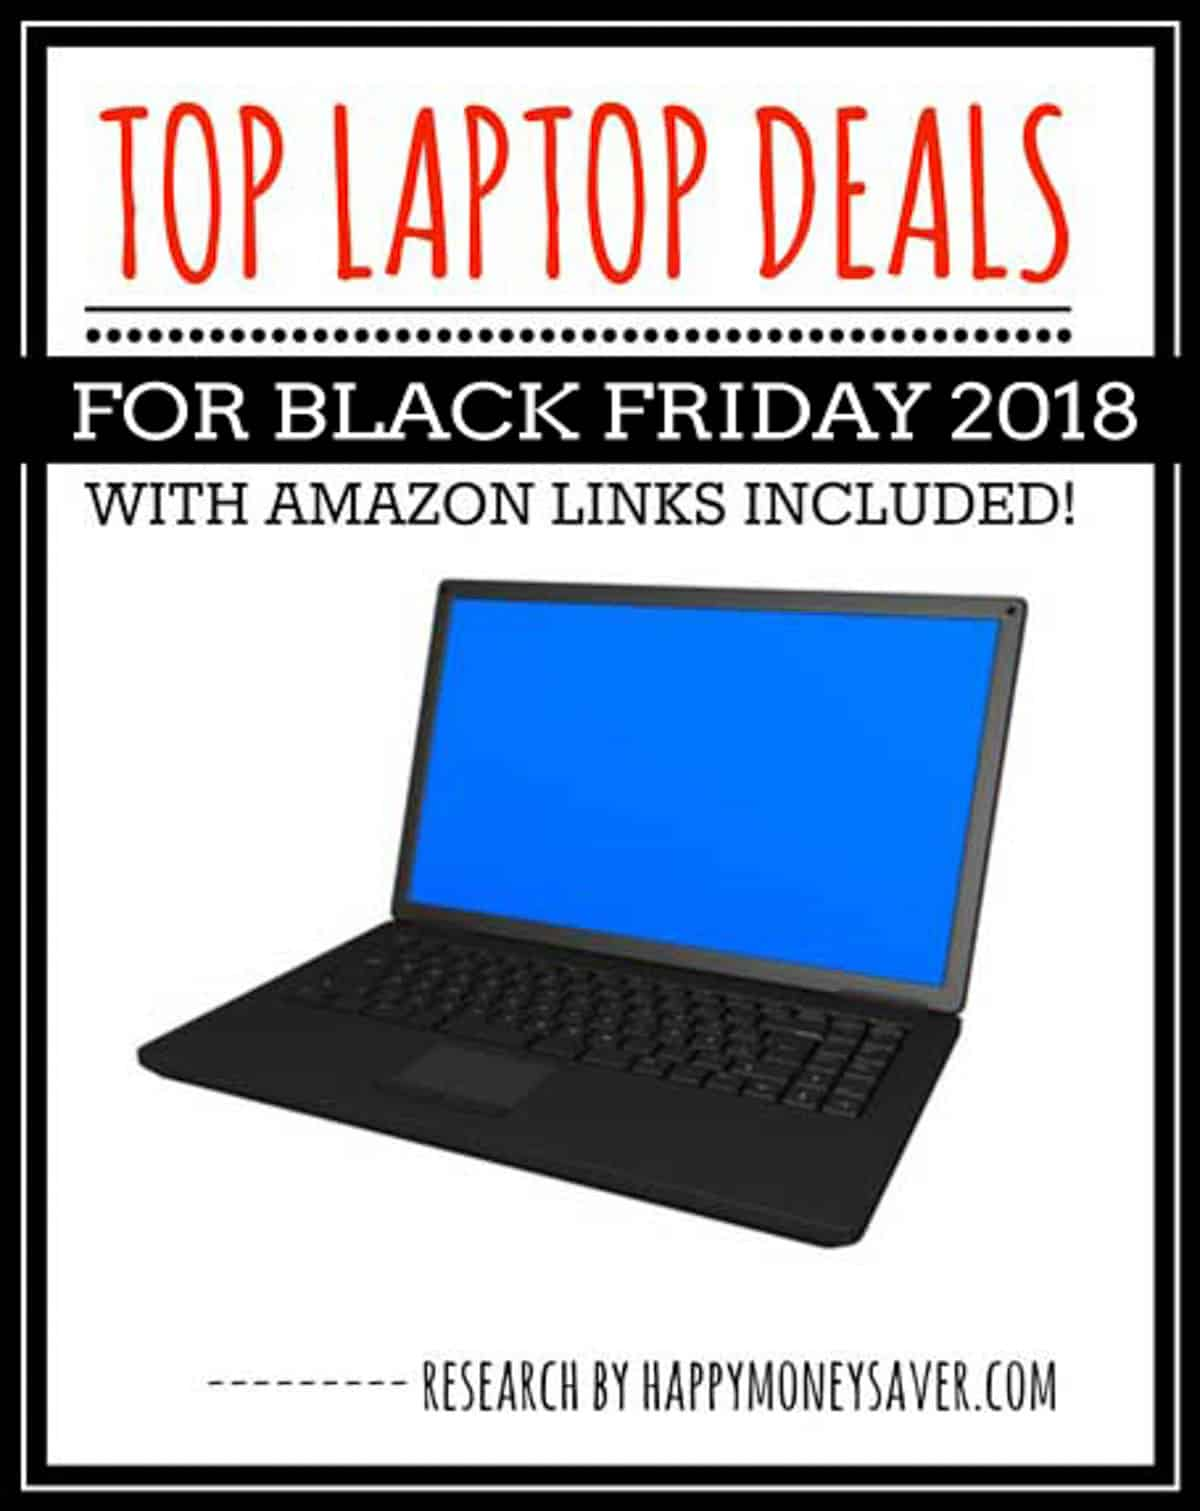 Here is a round up of all the top Laptop Black Friday Deals for 2018 - sure to make one thrilled to save money!